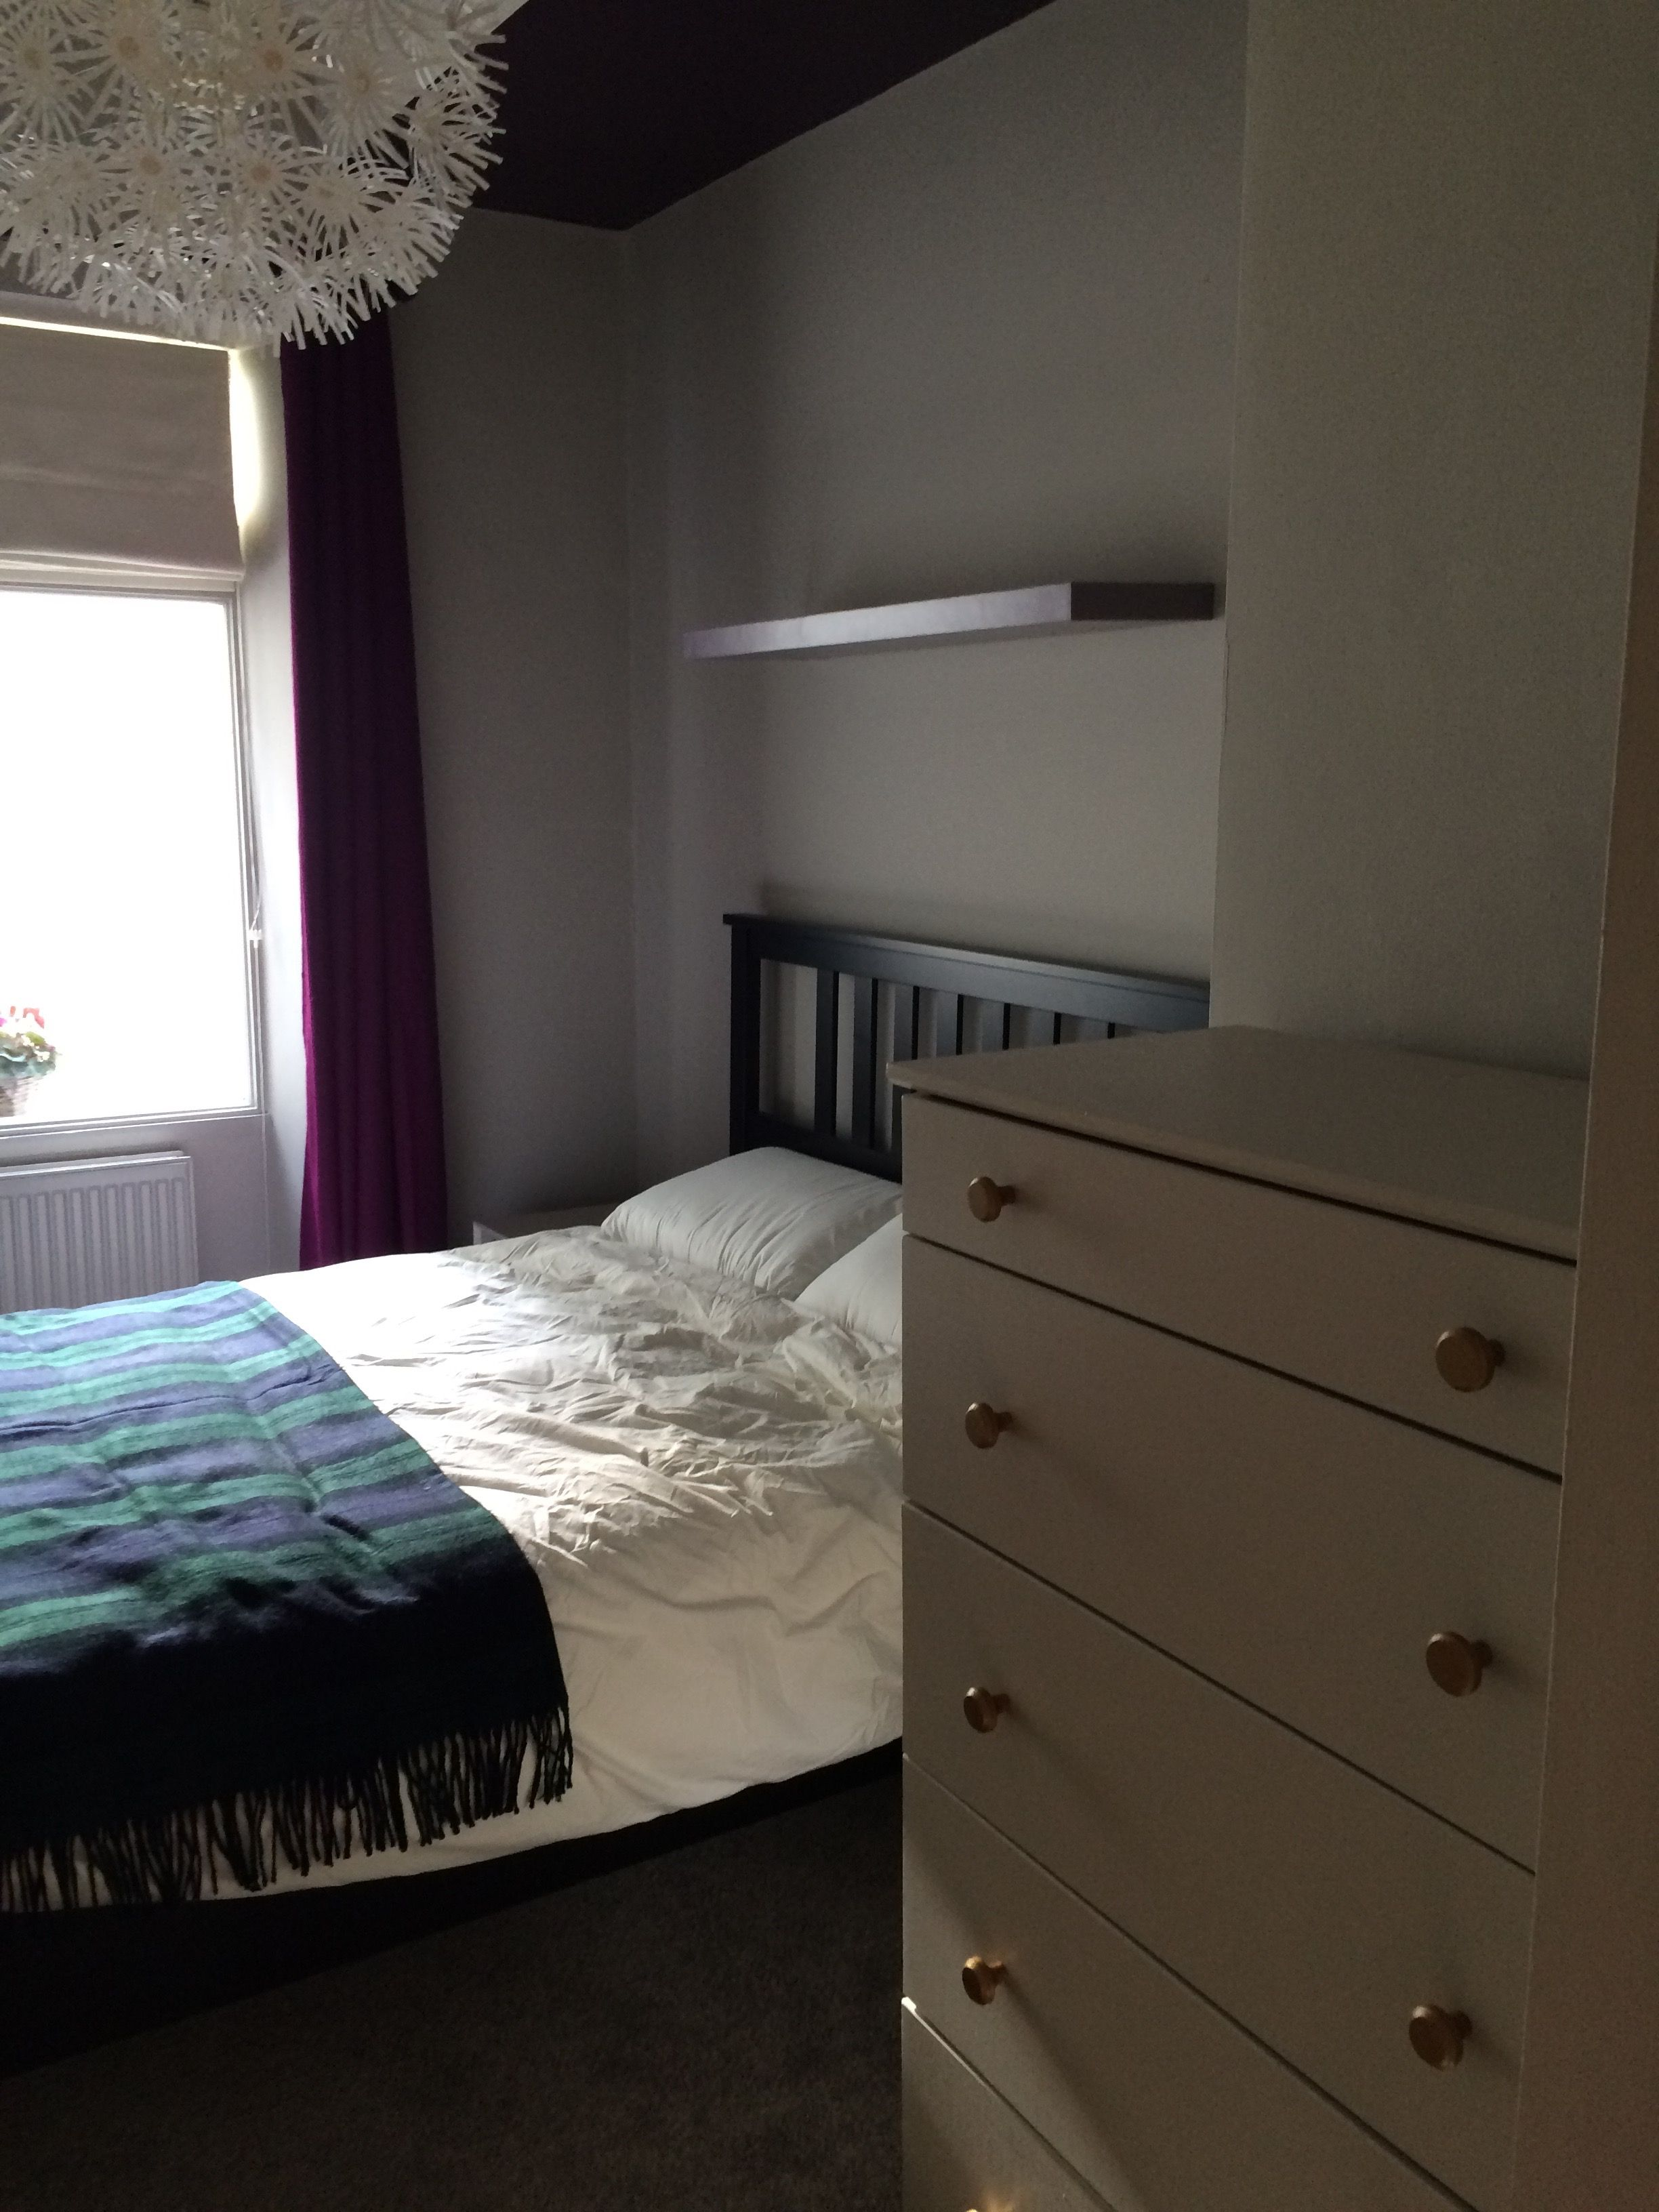 Strong White Farrow And Ball Bedroom Makeover Using Farrow And Ball Purbeck Stone On